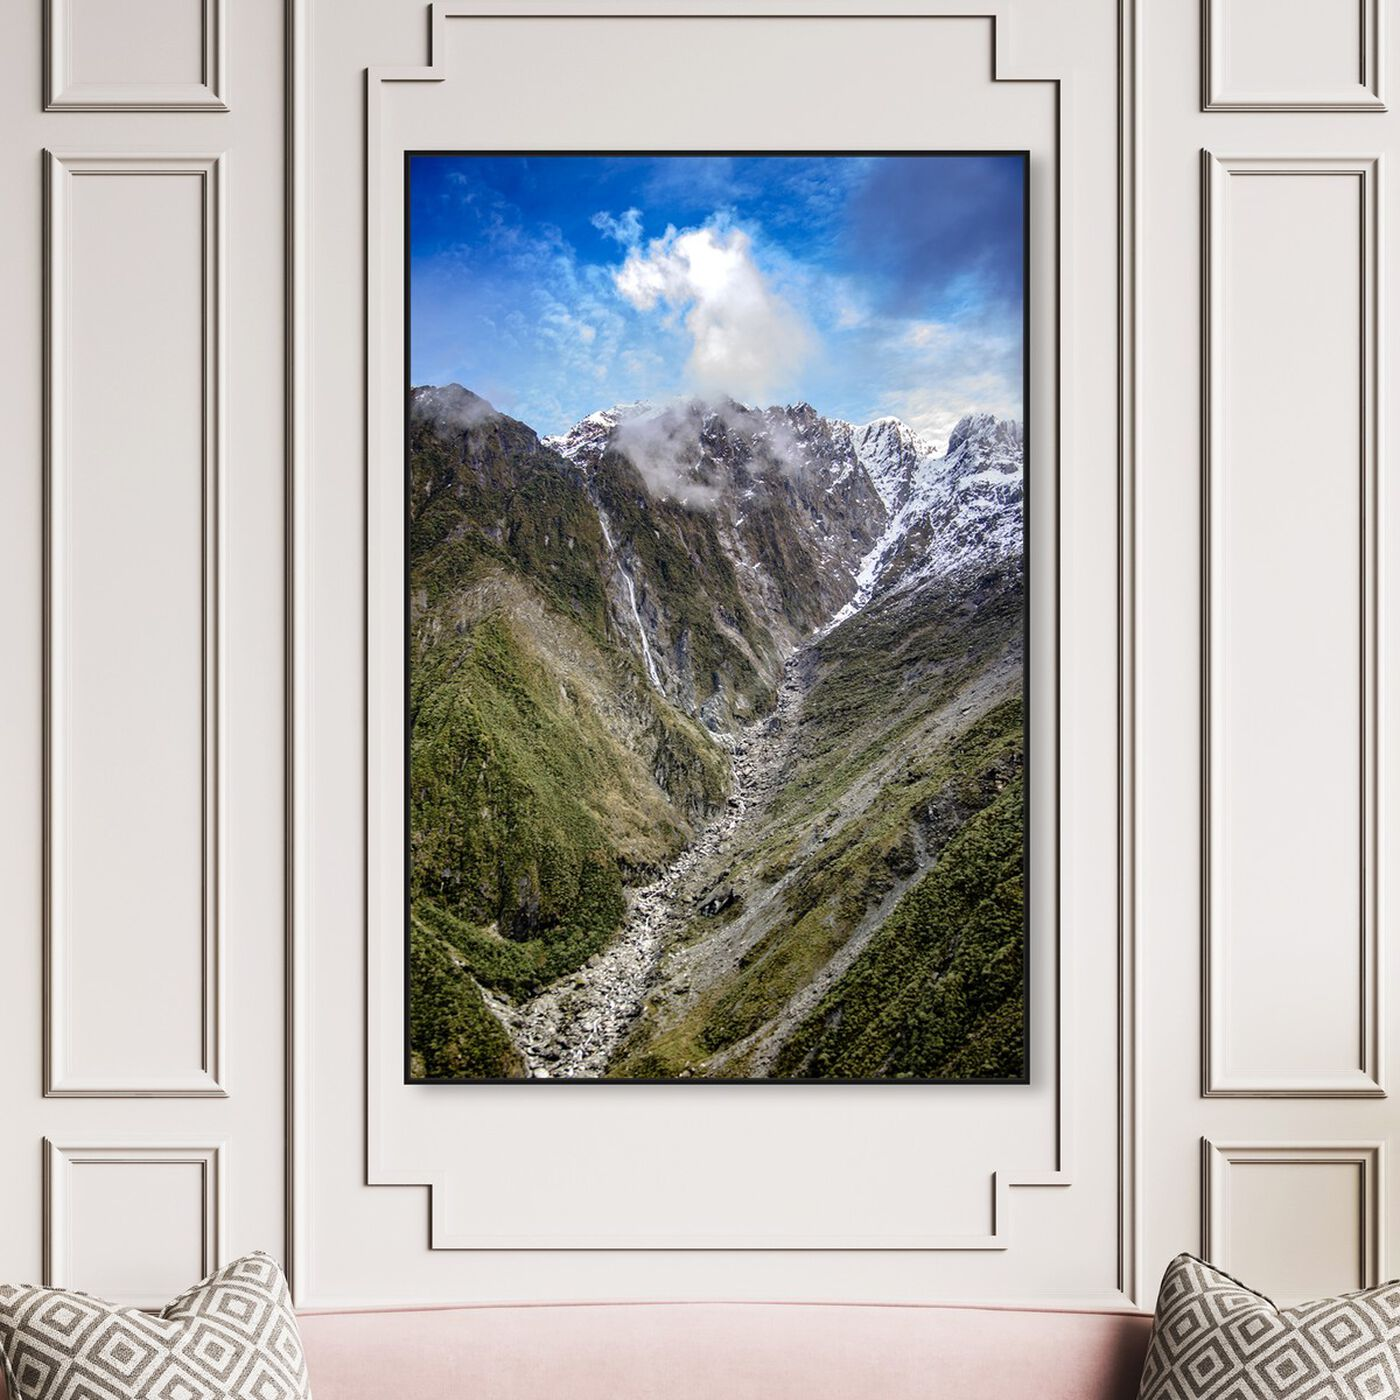 Hanging view of Curro Cardenal - Wild Creek featuring nature and landscape and mountains art.